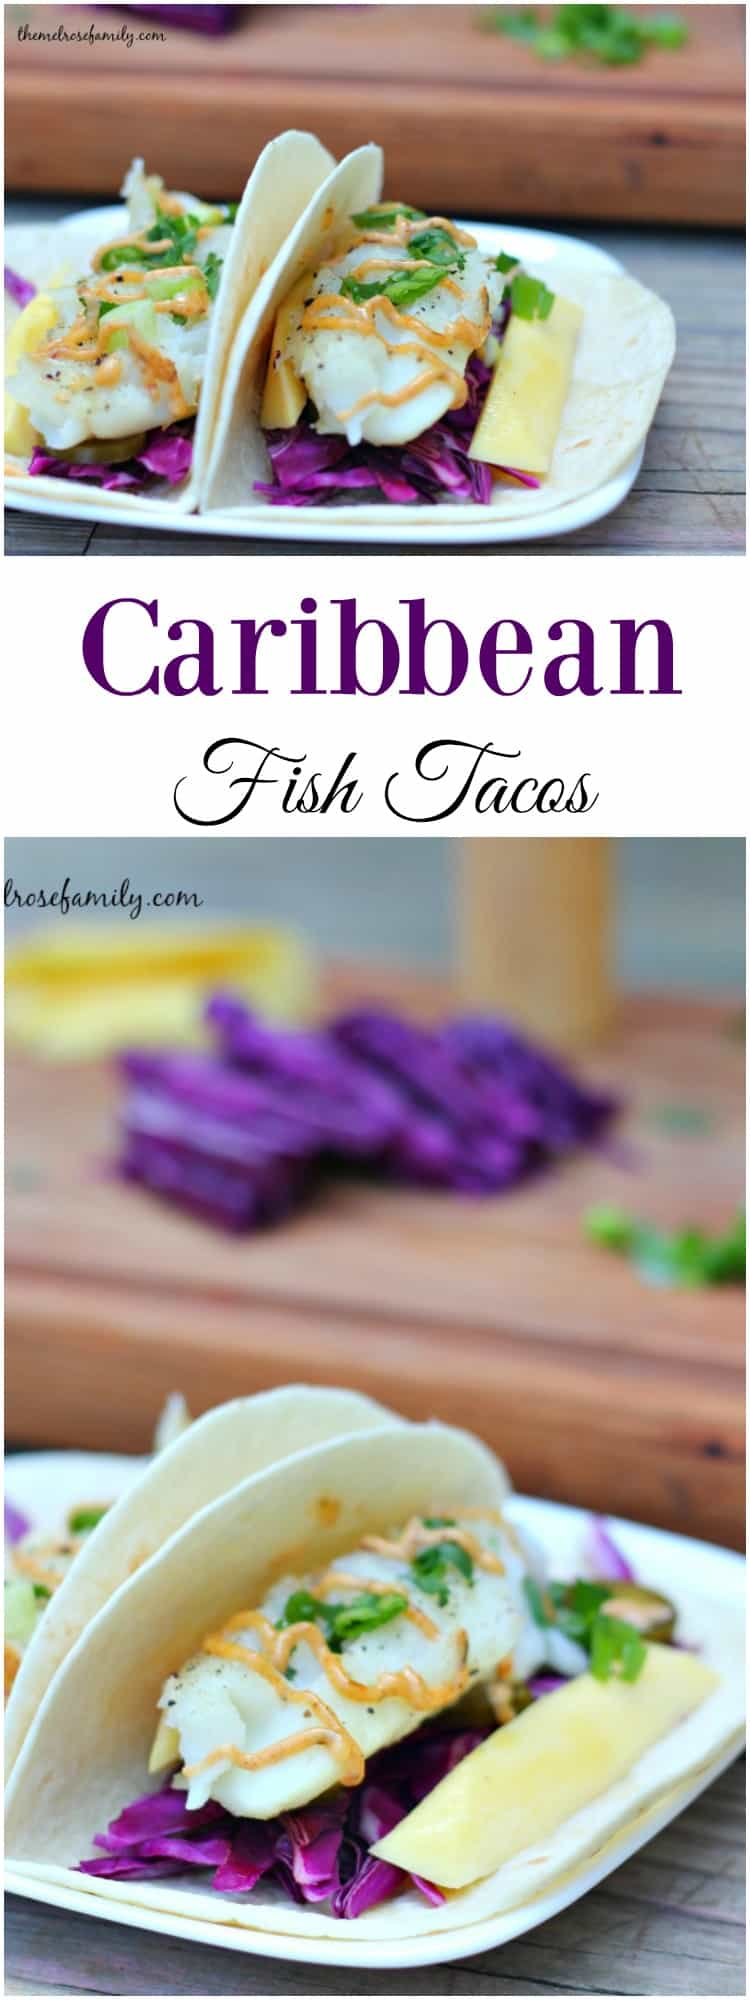 Not sure what to make for dinner? These Caribbean Fish Tacos are an easy weeknight meal full of fresh ingredients